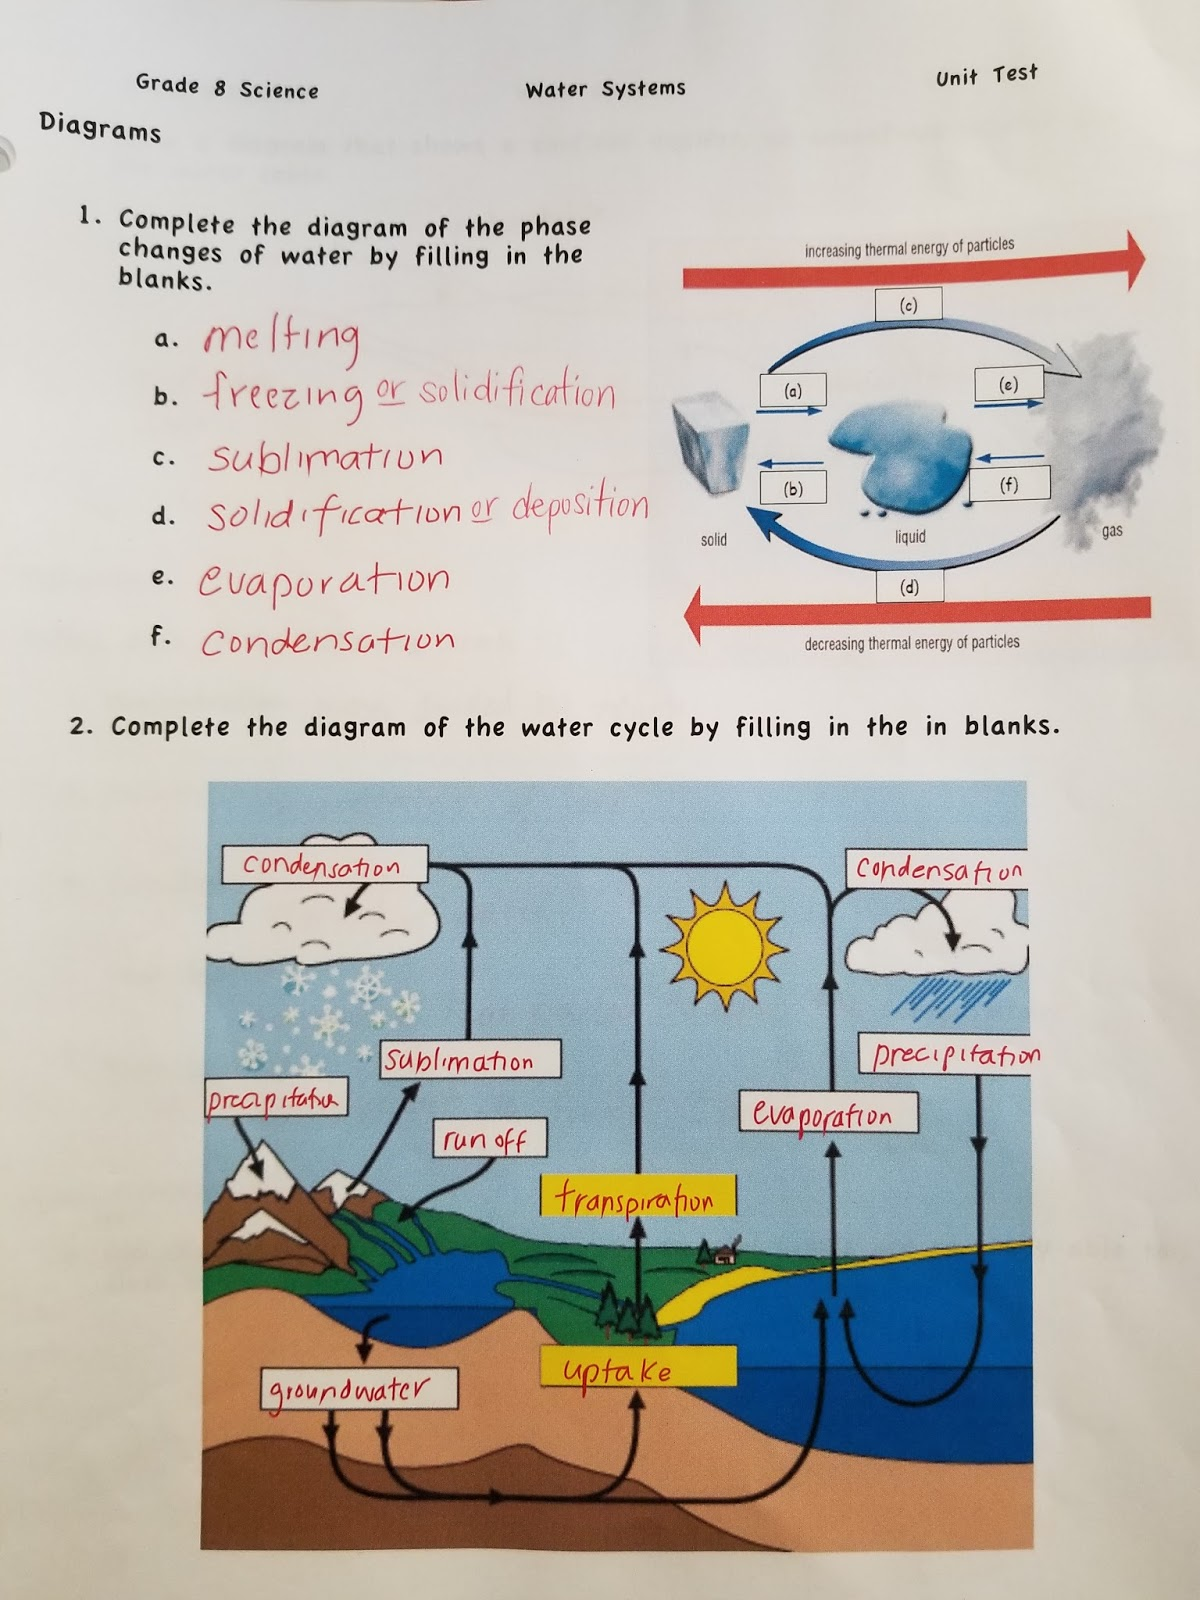 hight resolution of grade 8 science quiz on water systems on thursday may 3rd